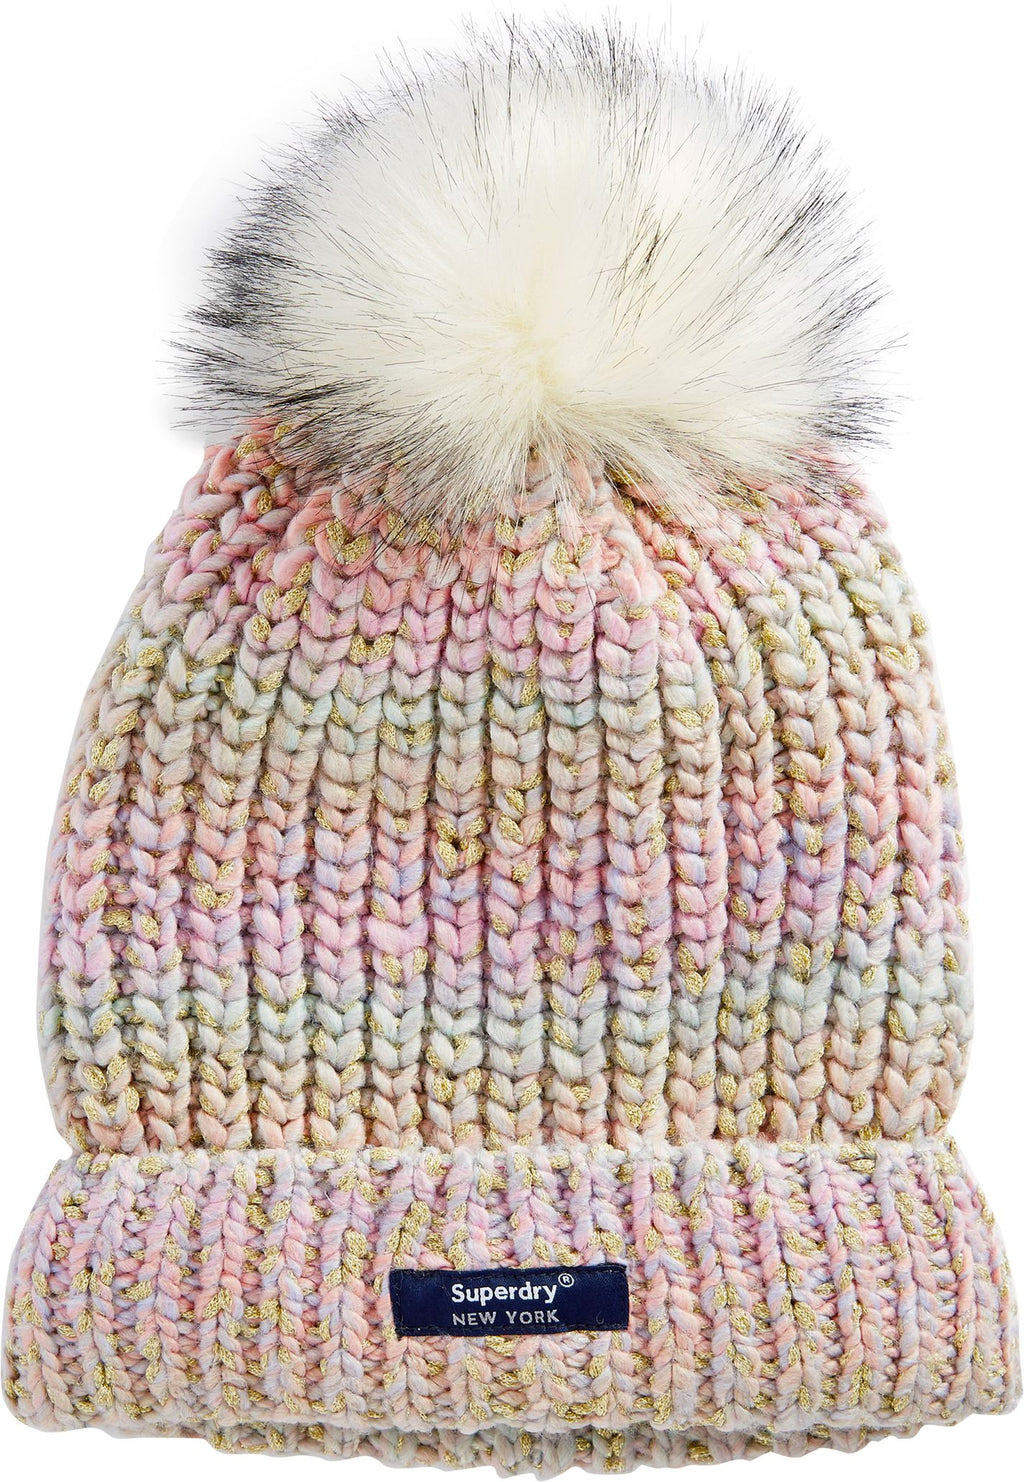 Superdry Sparkle Ombre Bobble Beanie Hat